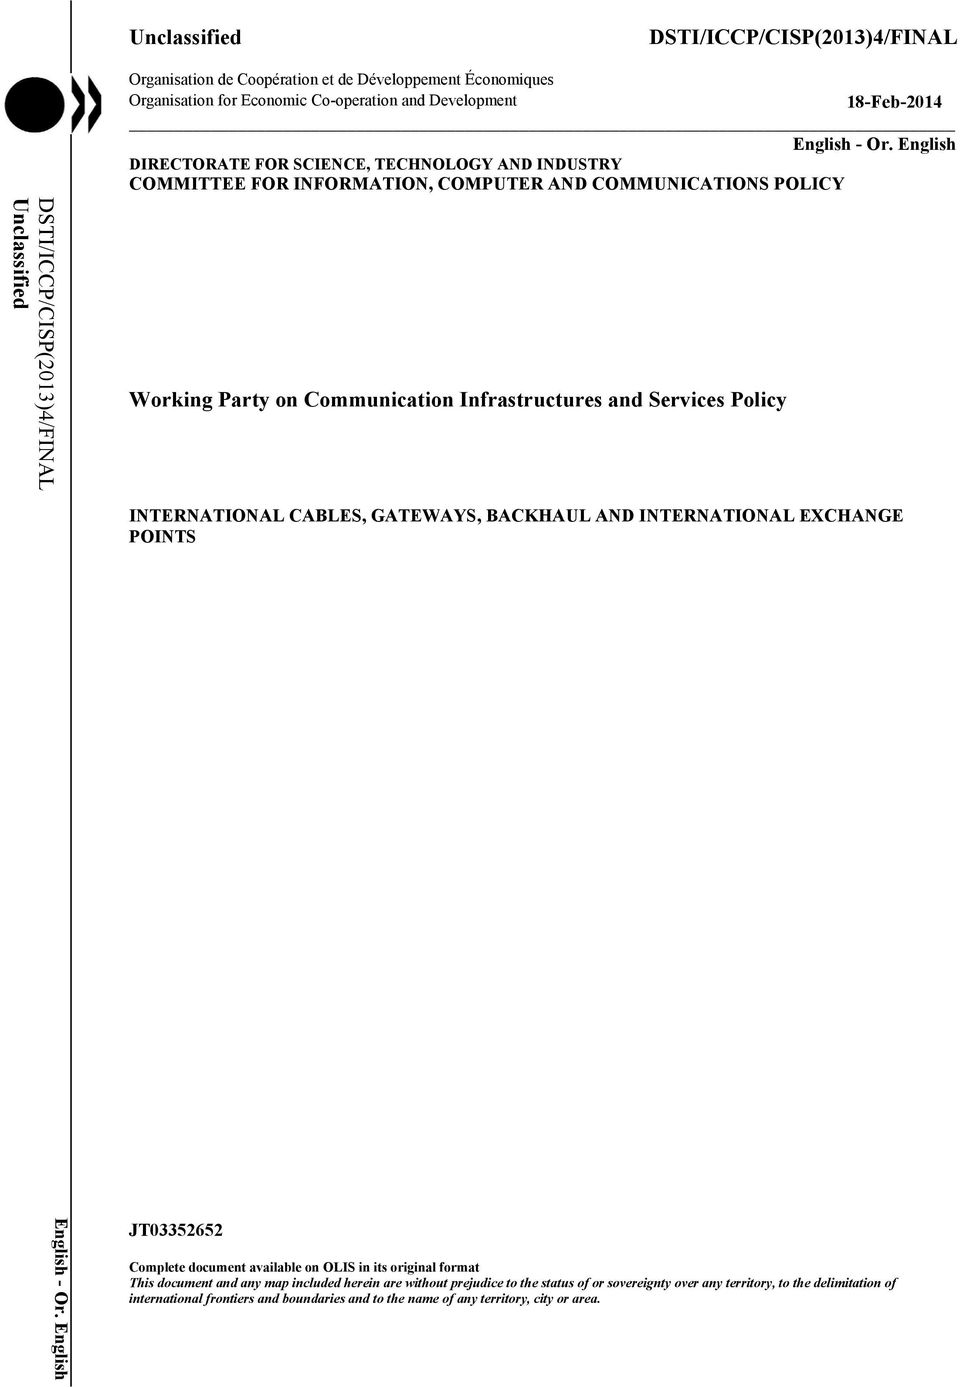 English DIRECTORATE FOR SCIENCE, TECHNOLOGY AND INDUSTRY COMMITTEE FOR INFORMATION, COMPUTER AND COMMUNICATIONS POLICY Working Party on Communication Infrastructures and Services Policy INTERNATIONAL